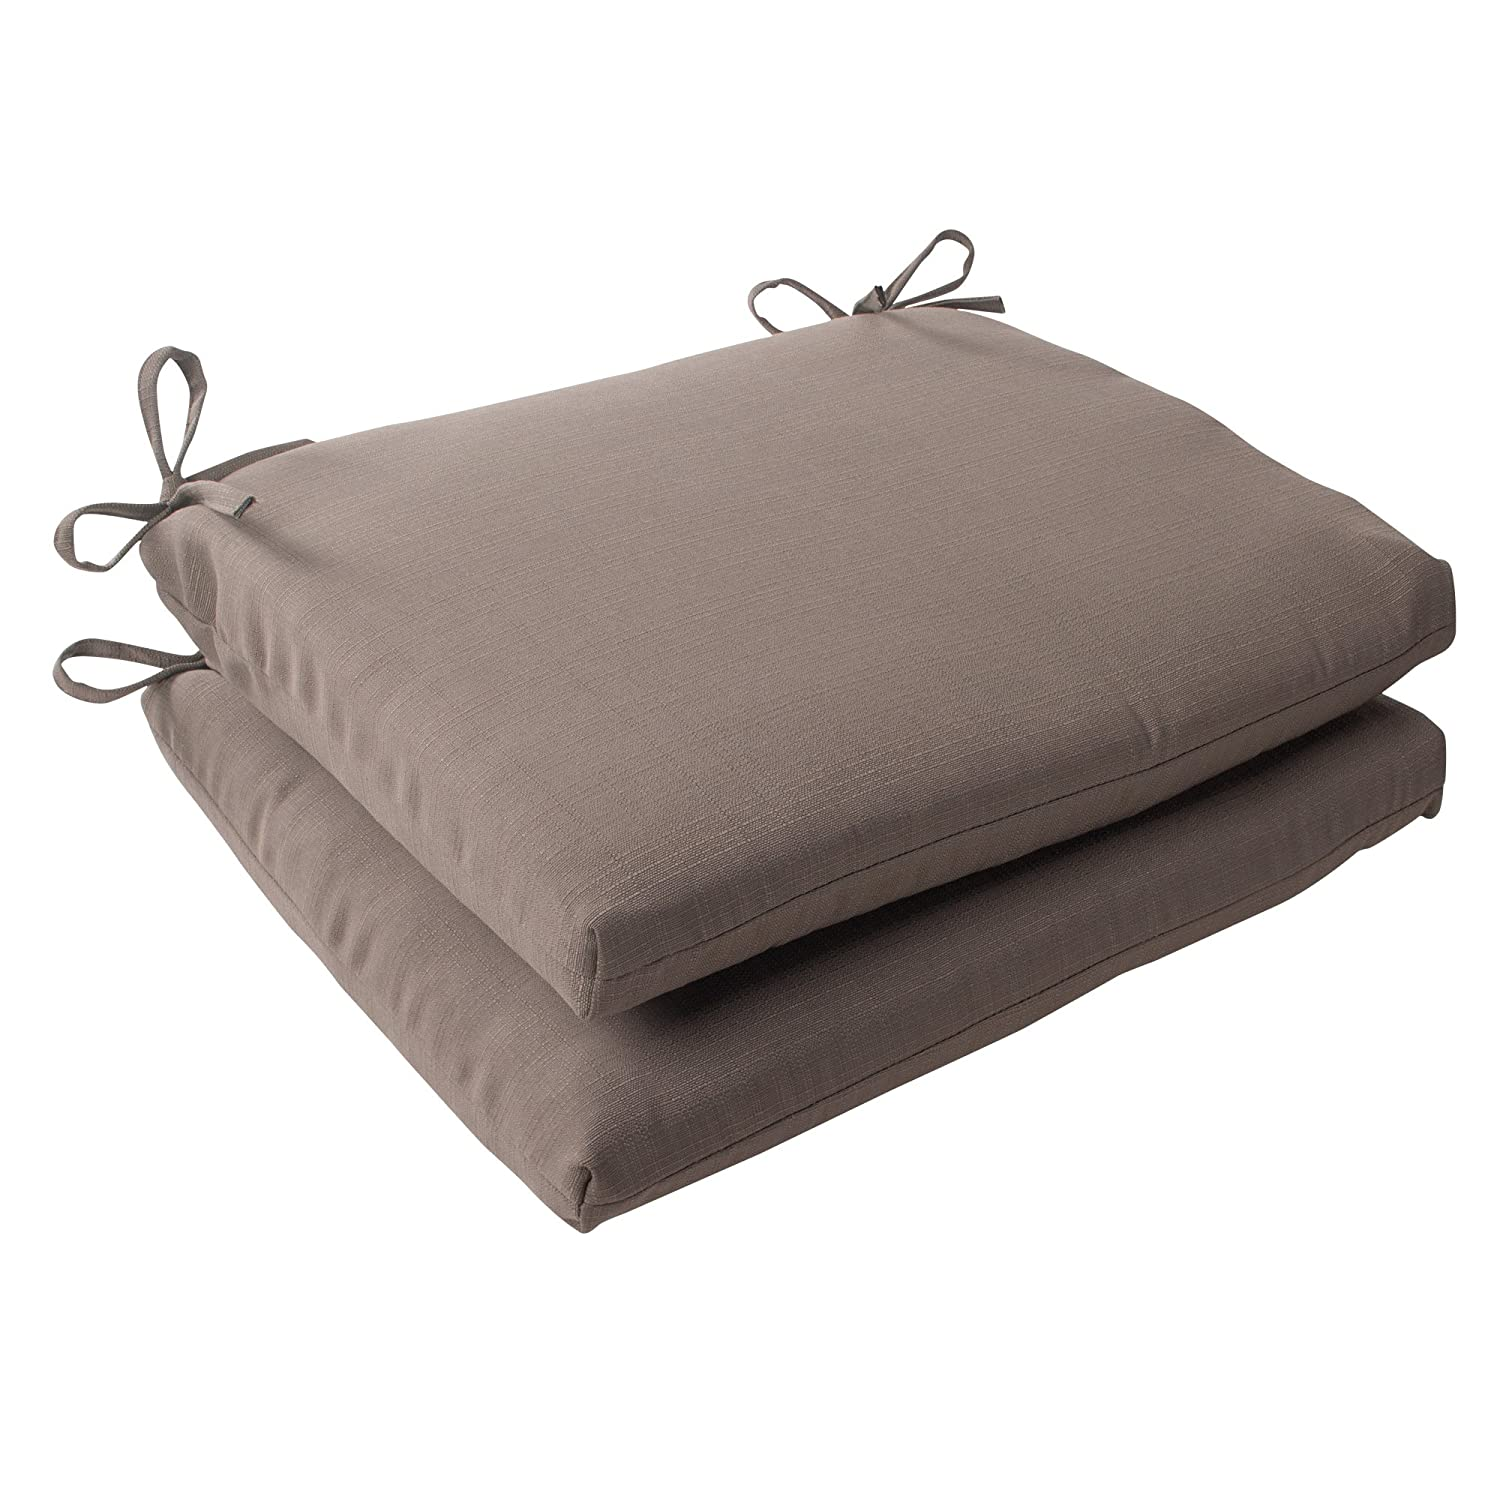 Pillow Perfect Indoor Outdoor Forsyth Squared Seat Cushion, Taupe, Set of 2